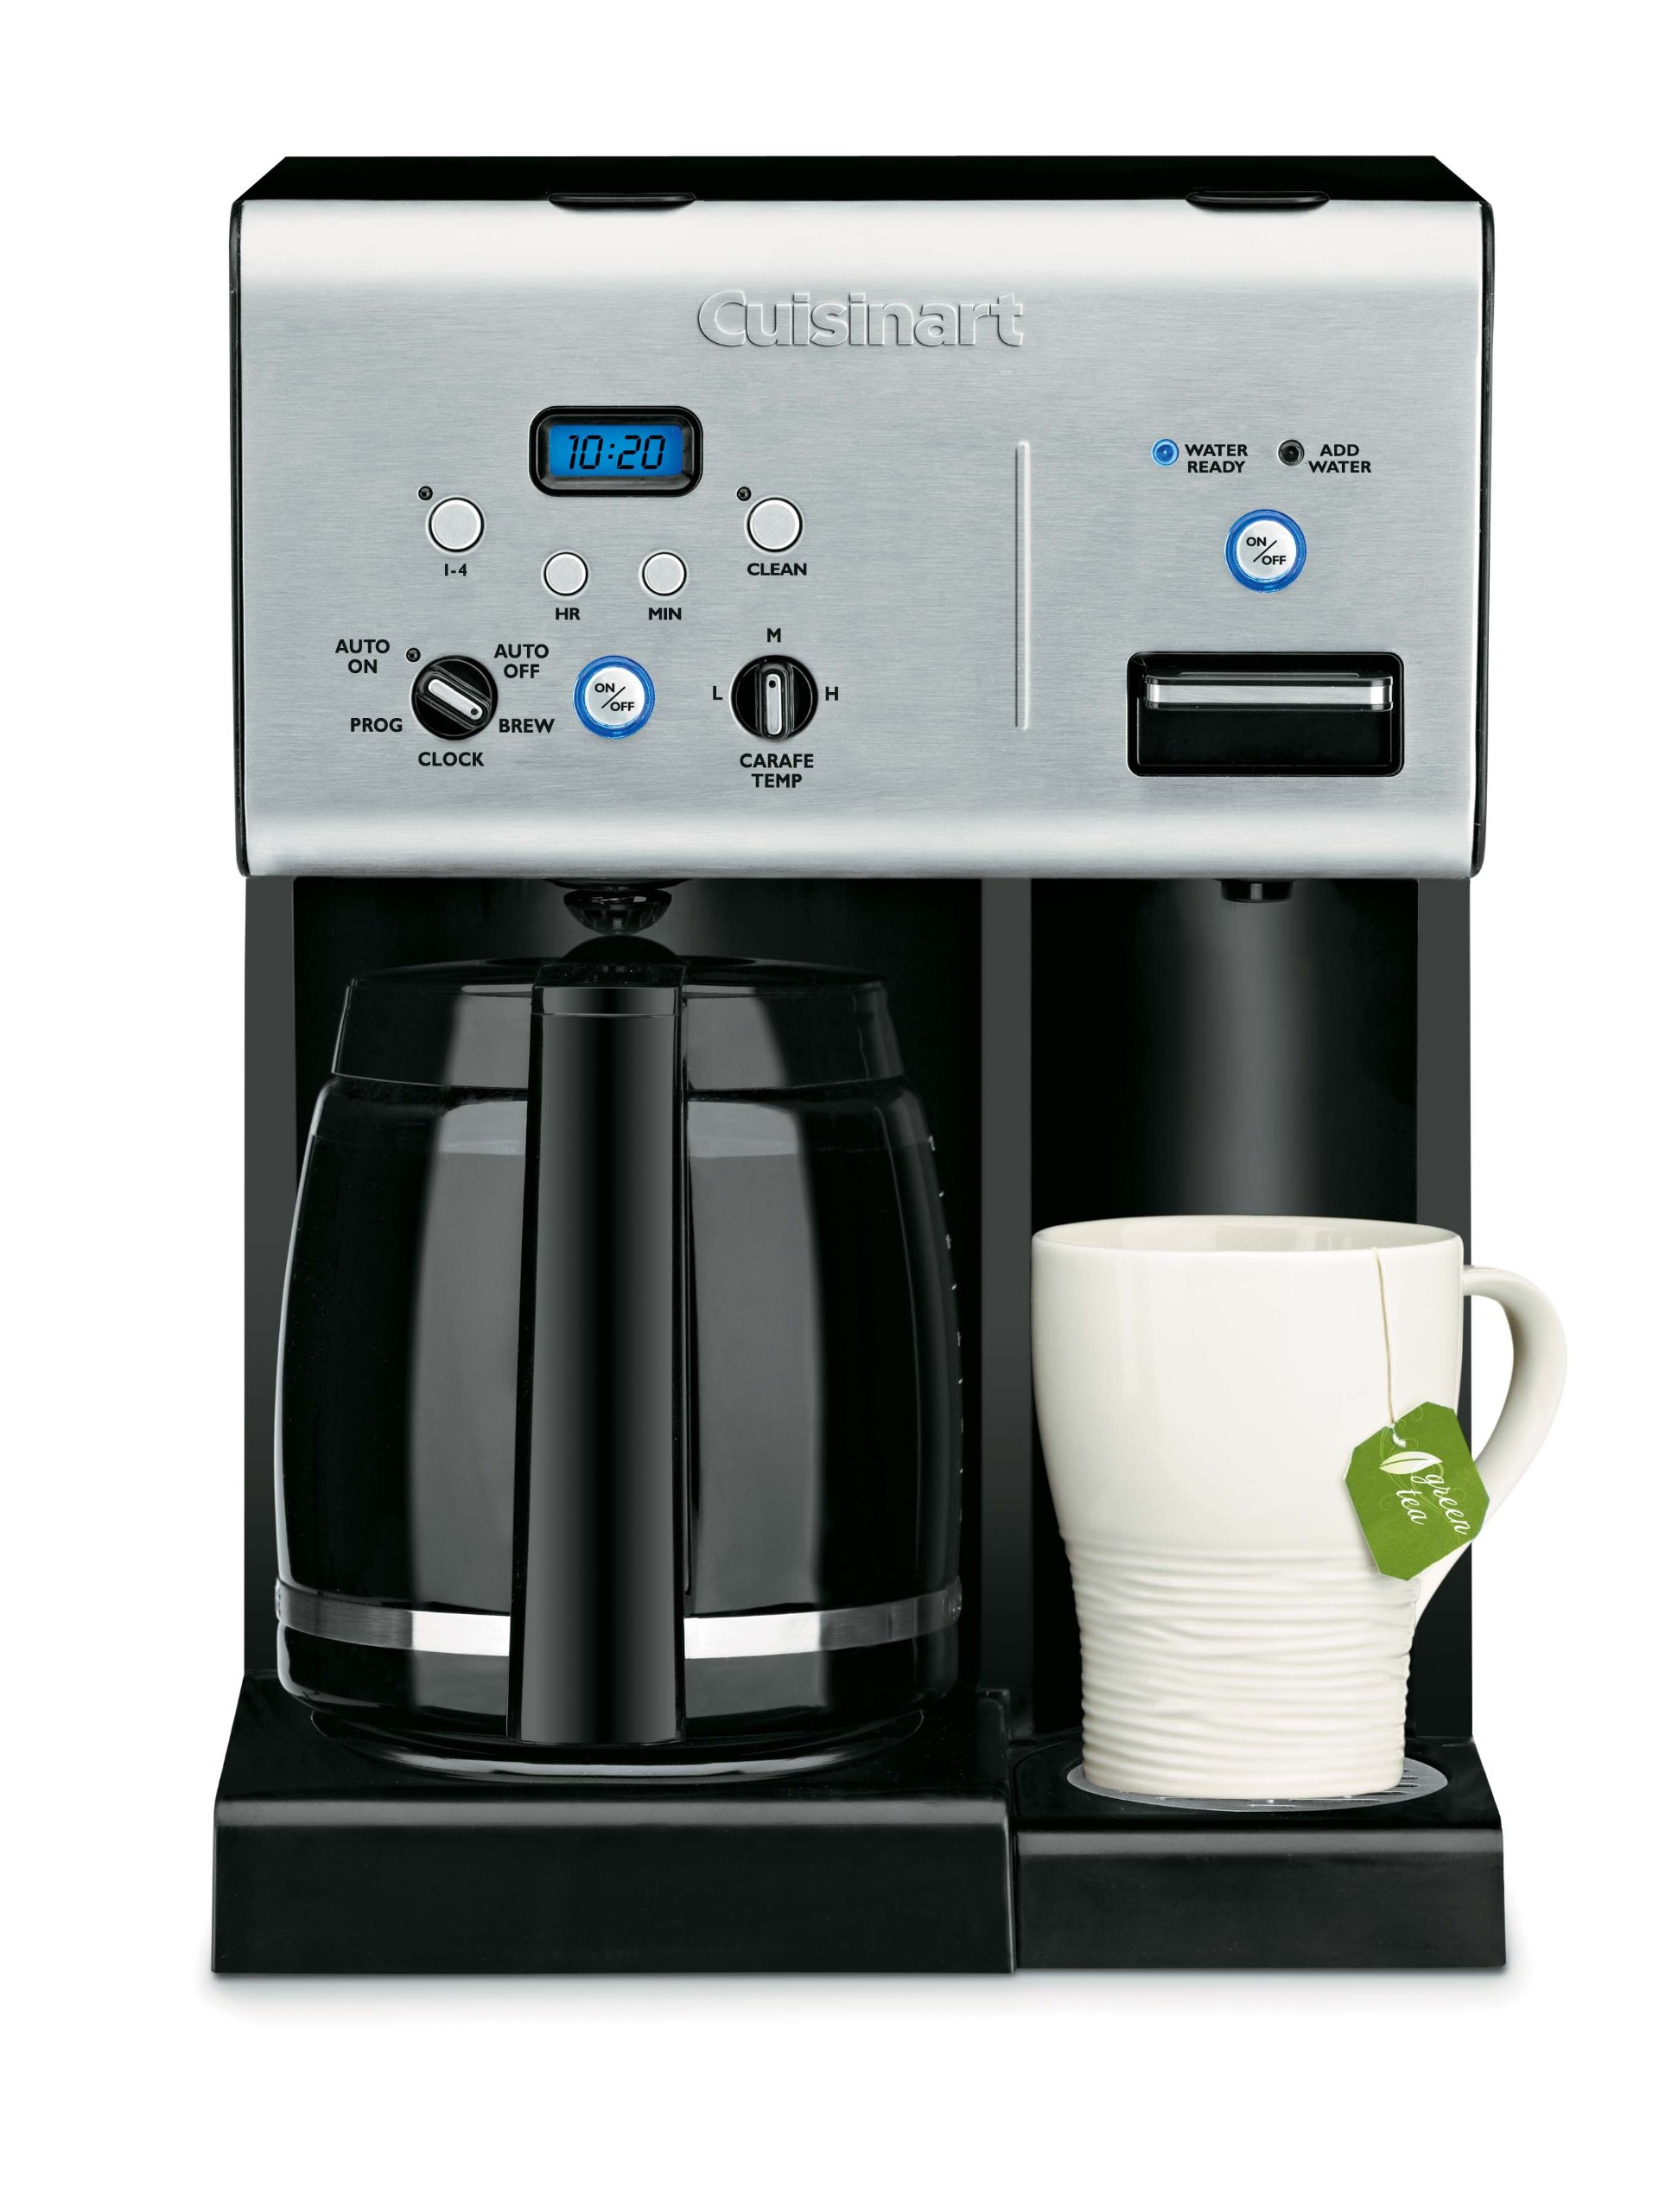 Cuisinart Coffee Maker - 12 cup - with Hot Water System by Cuisinart (Image #1)